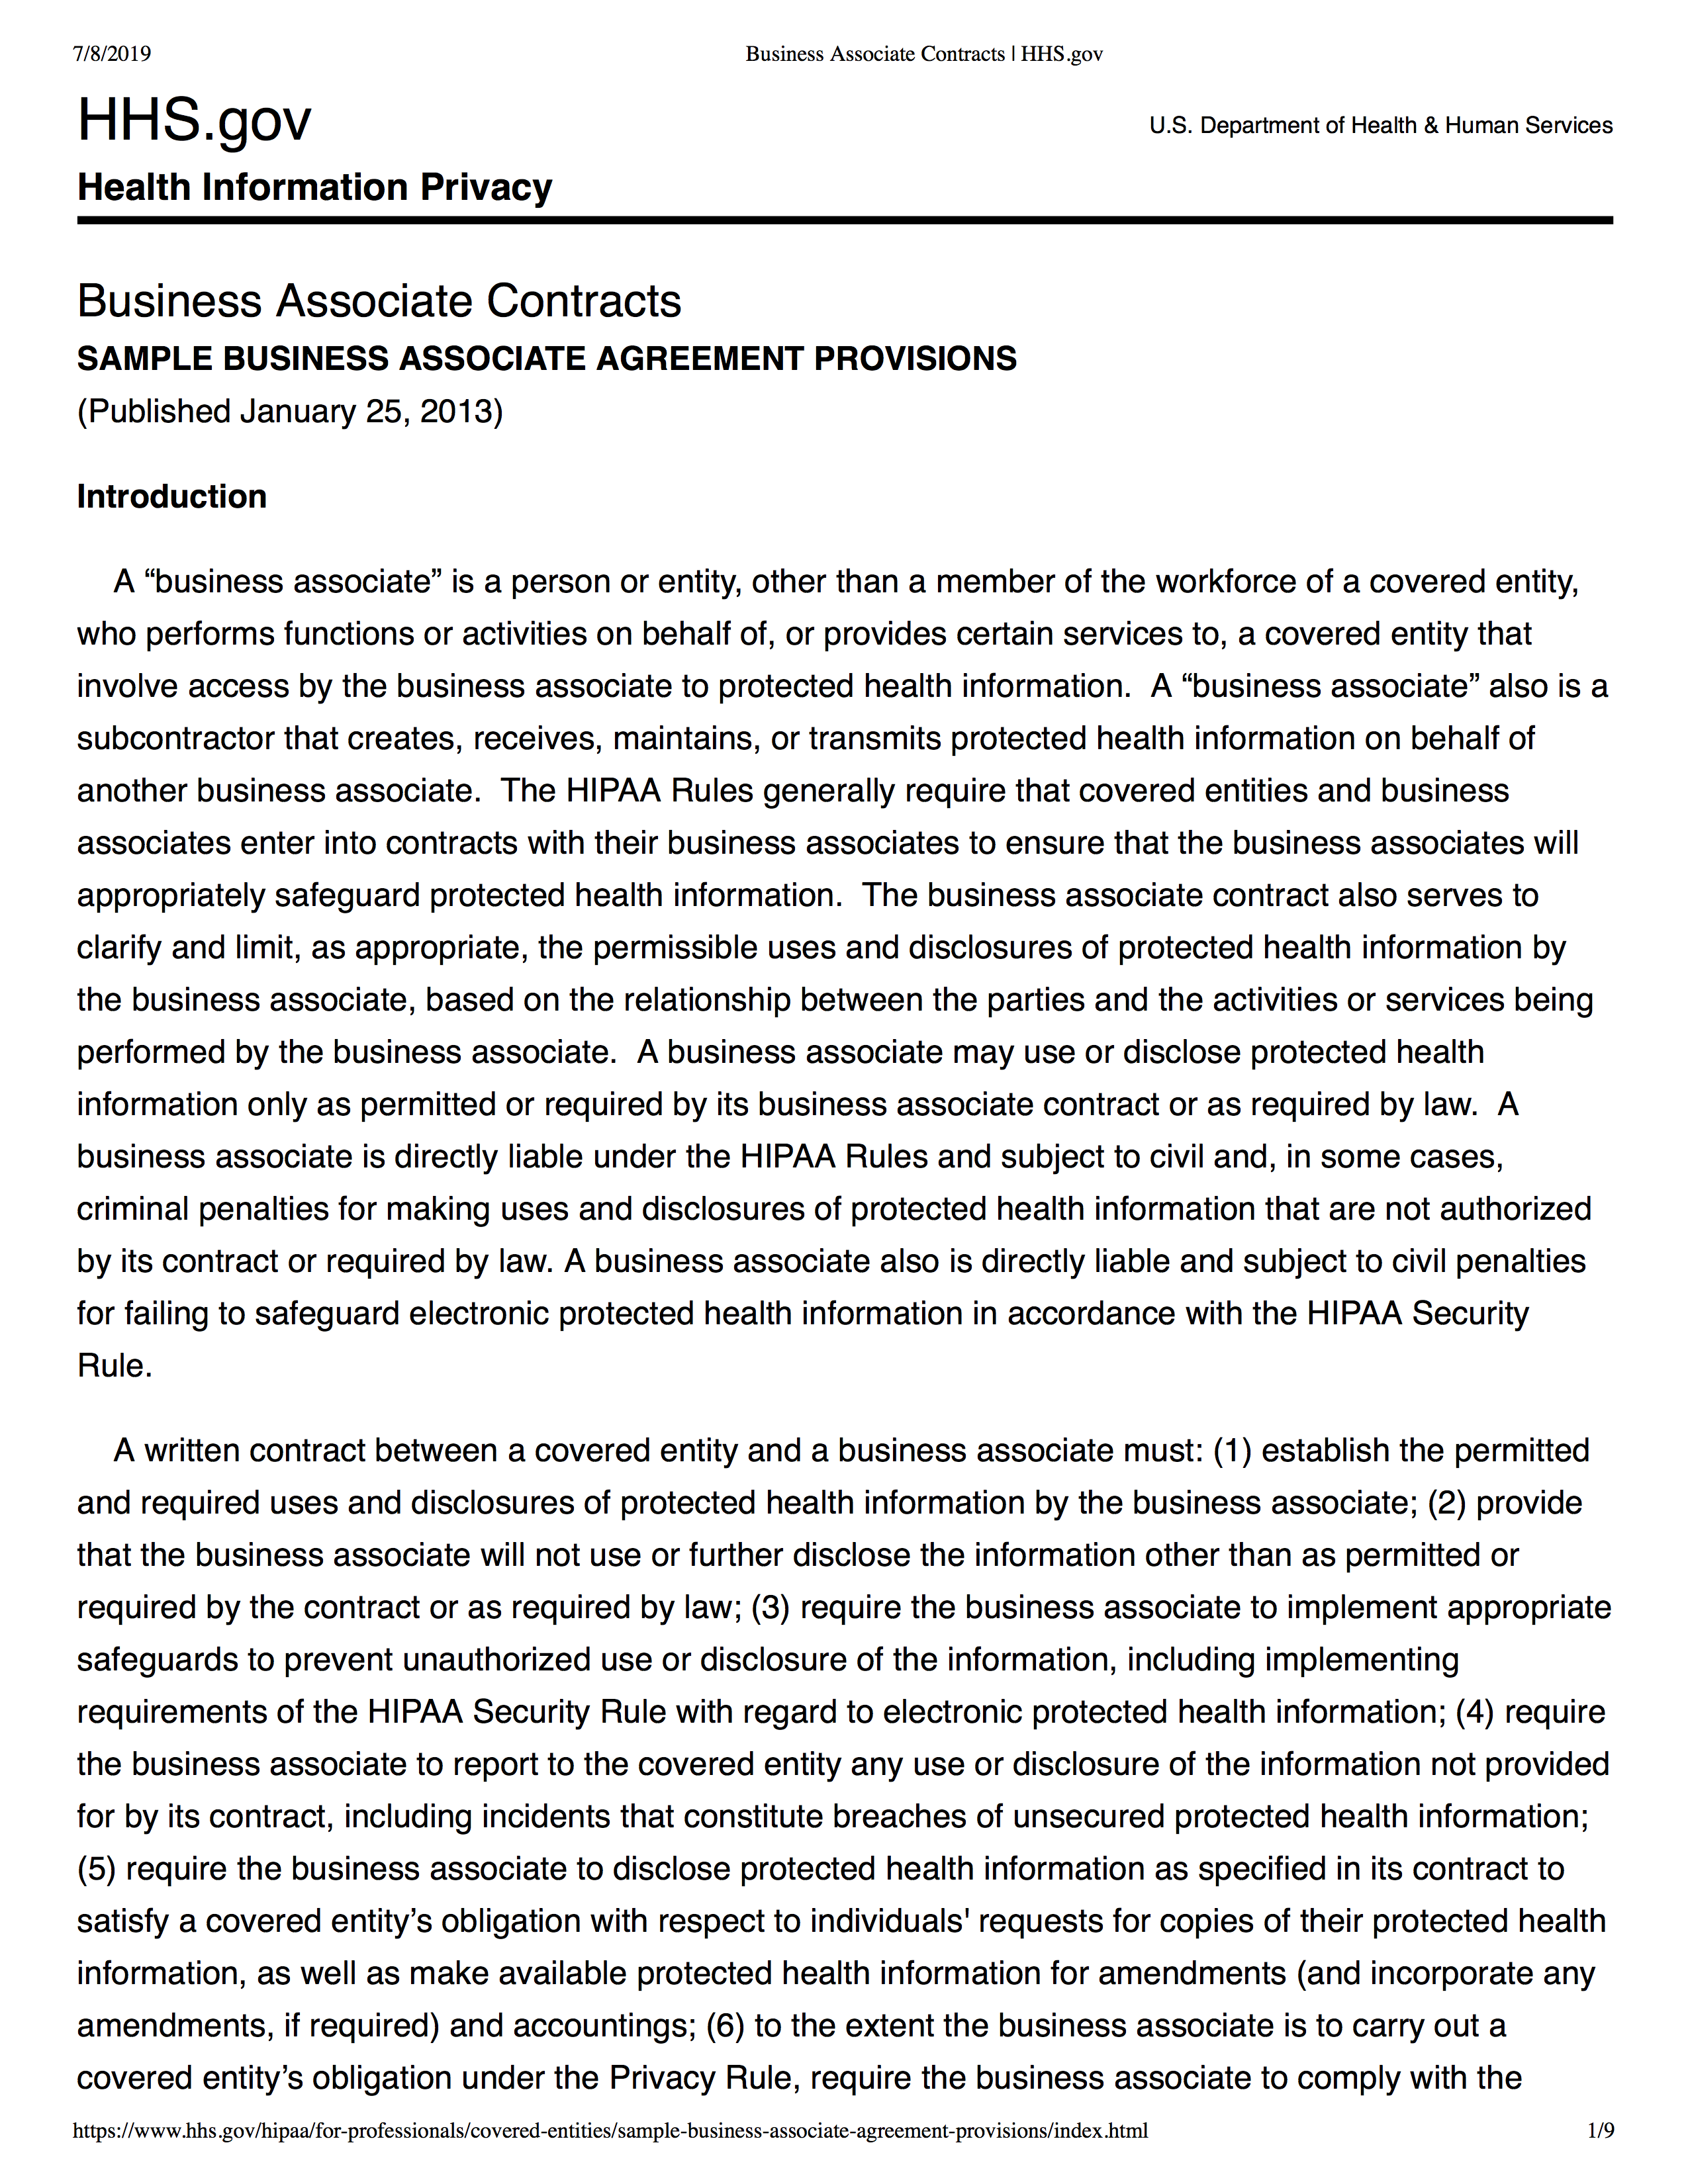 Business Associate Contracts Community Commons